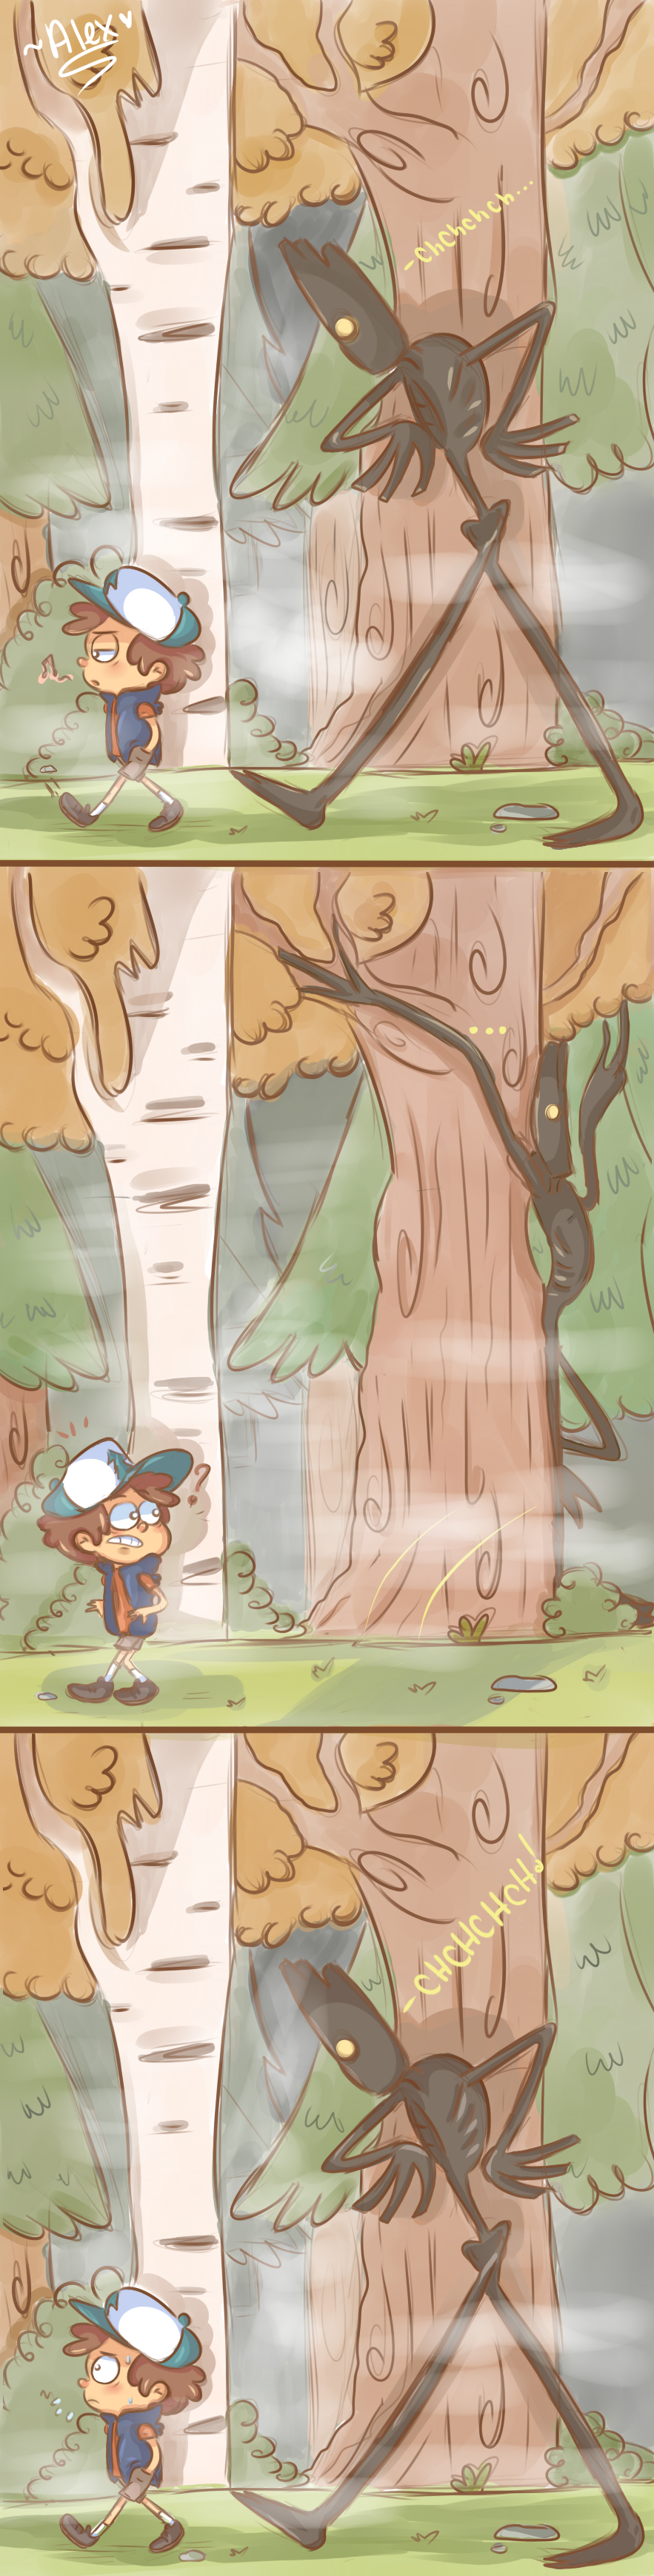 The Hide Behind By Chibiirose On Deviantart